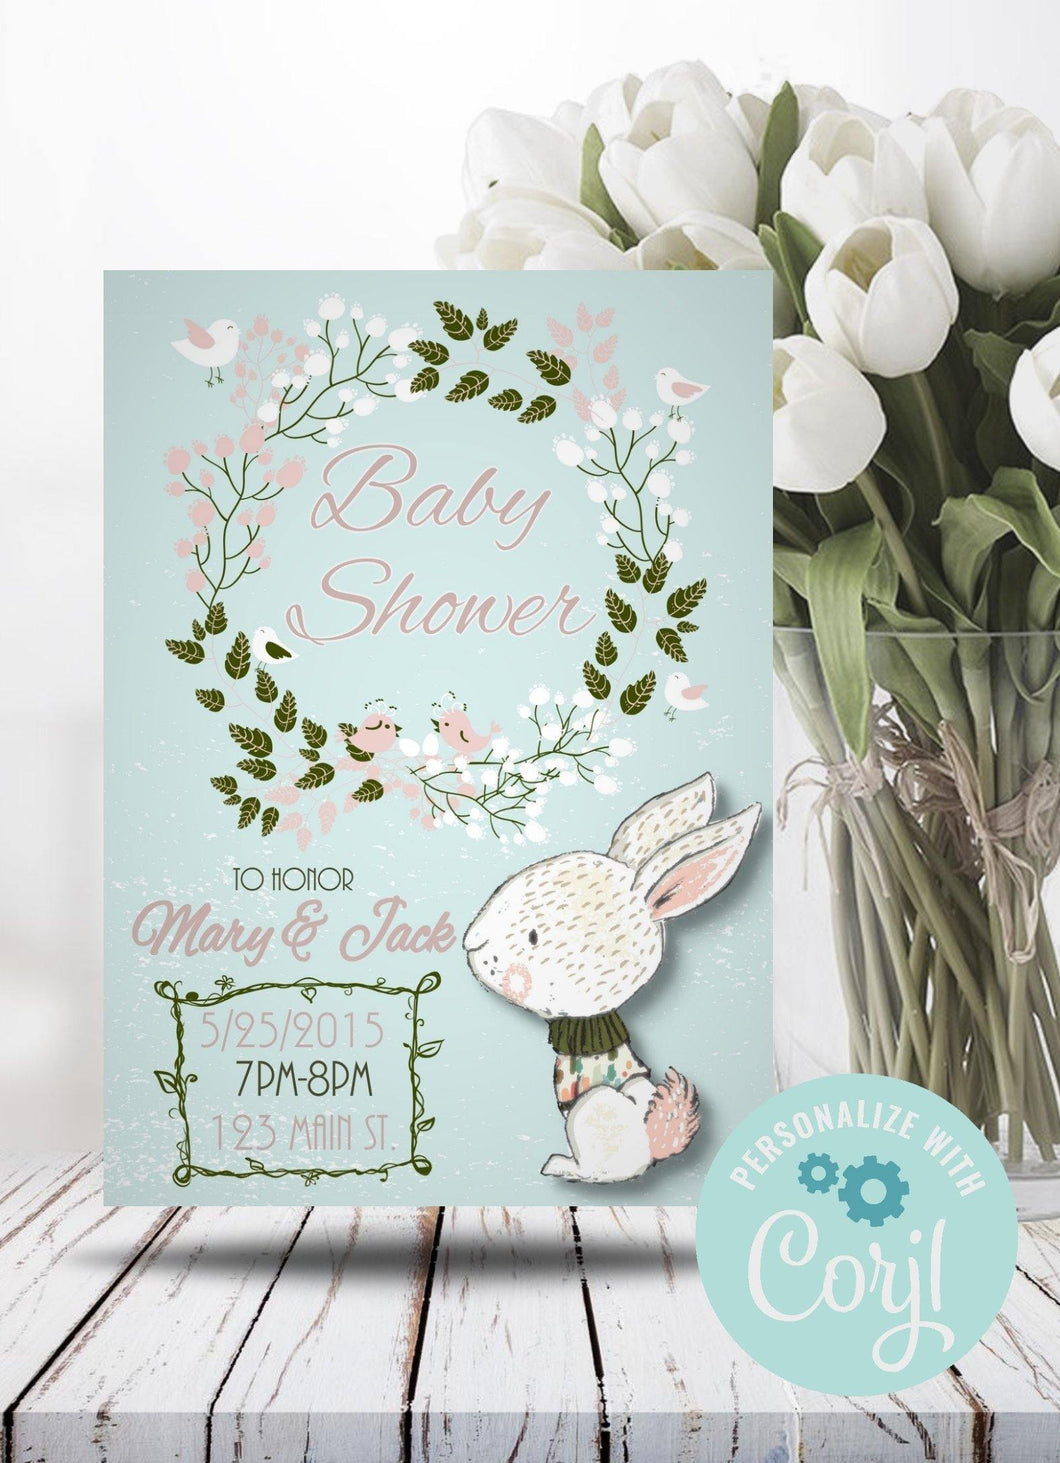 Floral Wreath Bunny Baby Shower Invite -Shop for Floral Wreath Bunny Baby Shower Invite